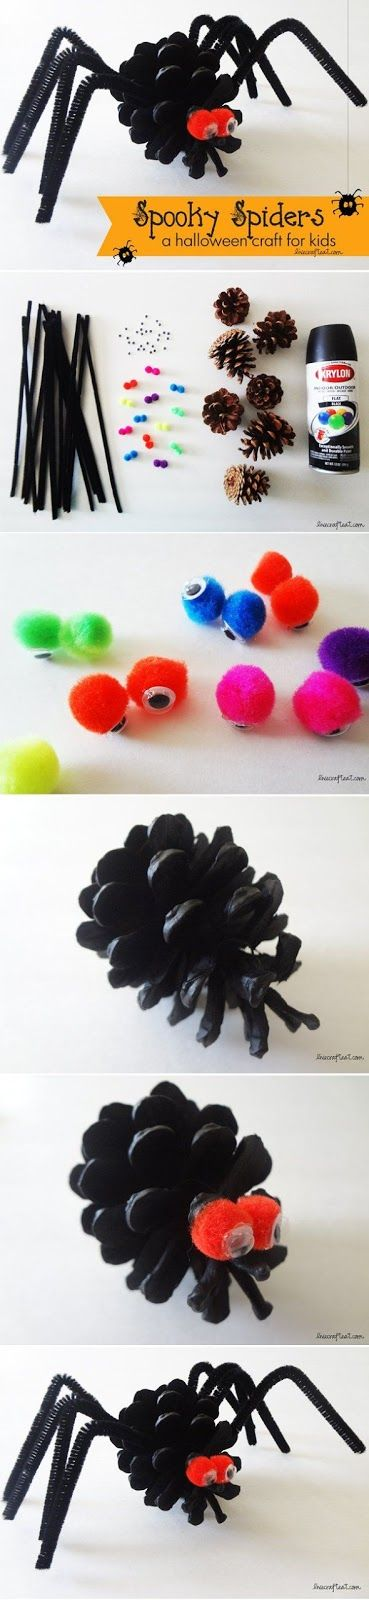 303Pixels: an easy halloween spider craft for kids uses only a few inexpensive craft supplies that you probably already have on hand. so cute for decorating your house or front door !